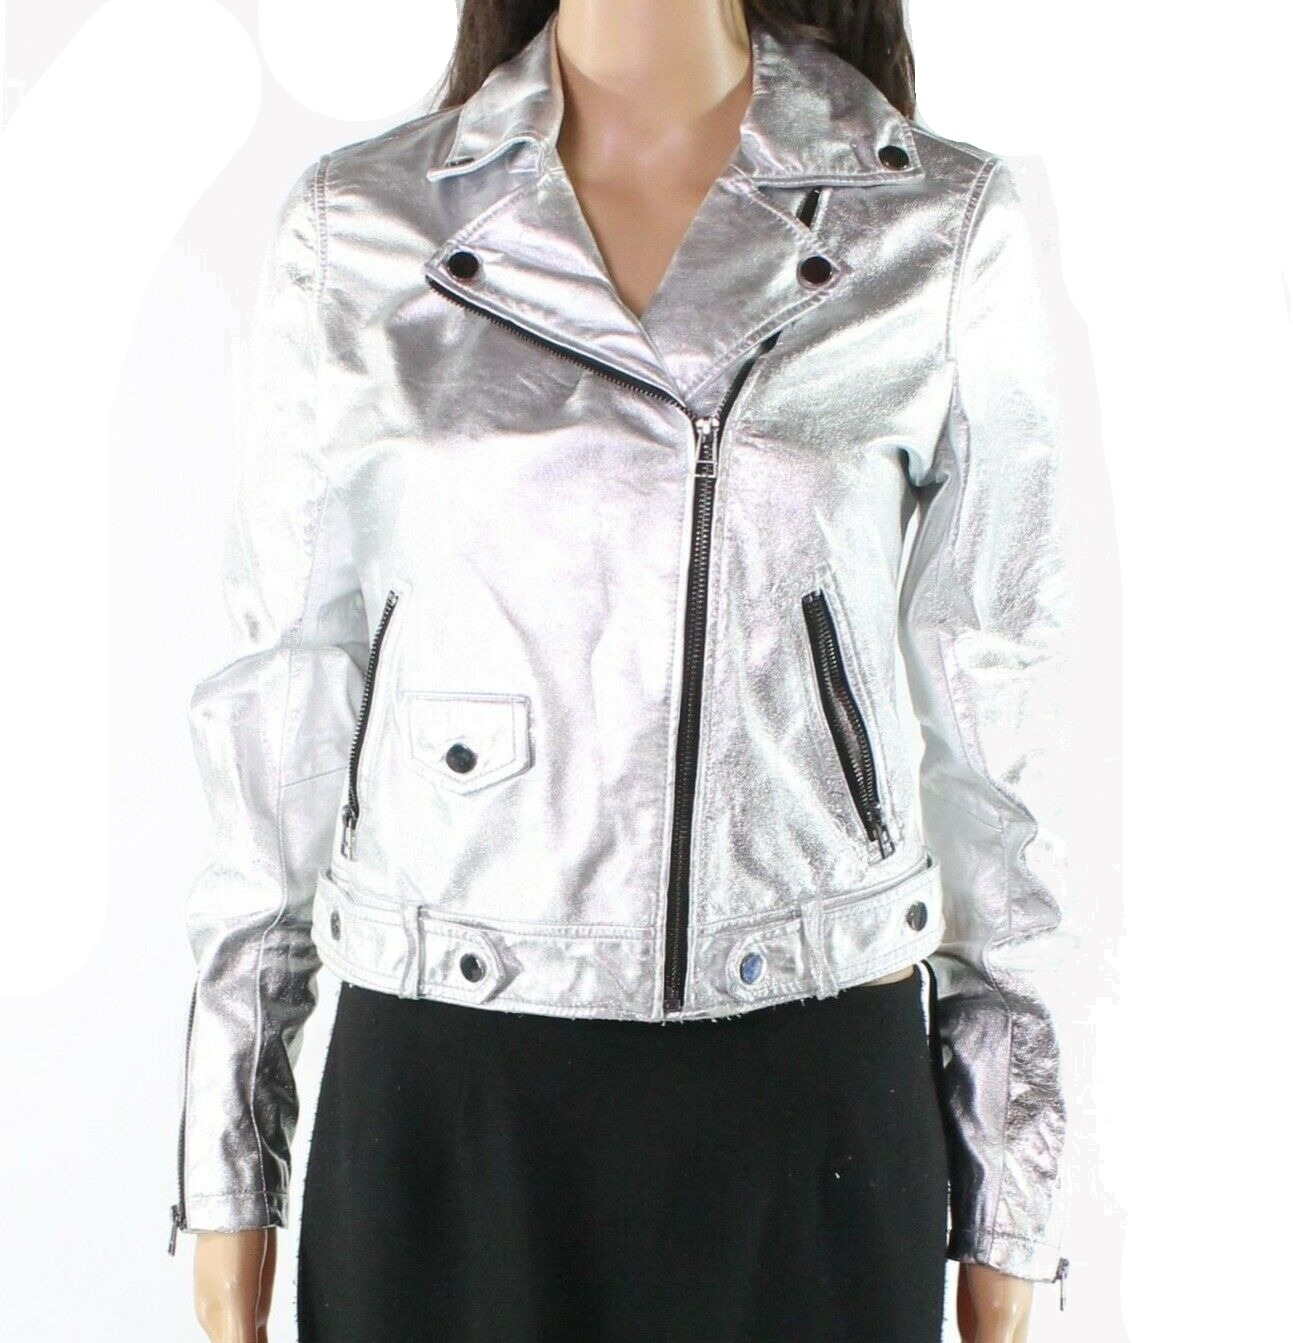 bc8ad54dc Details about Slate & Willow Womens Jacket Silver Size Small S Metallic  Moto Leather $695 #535